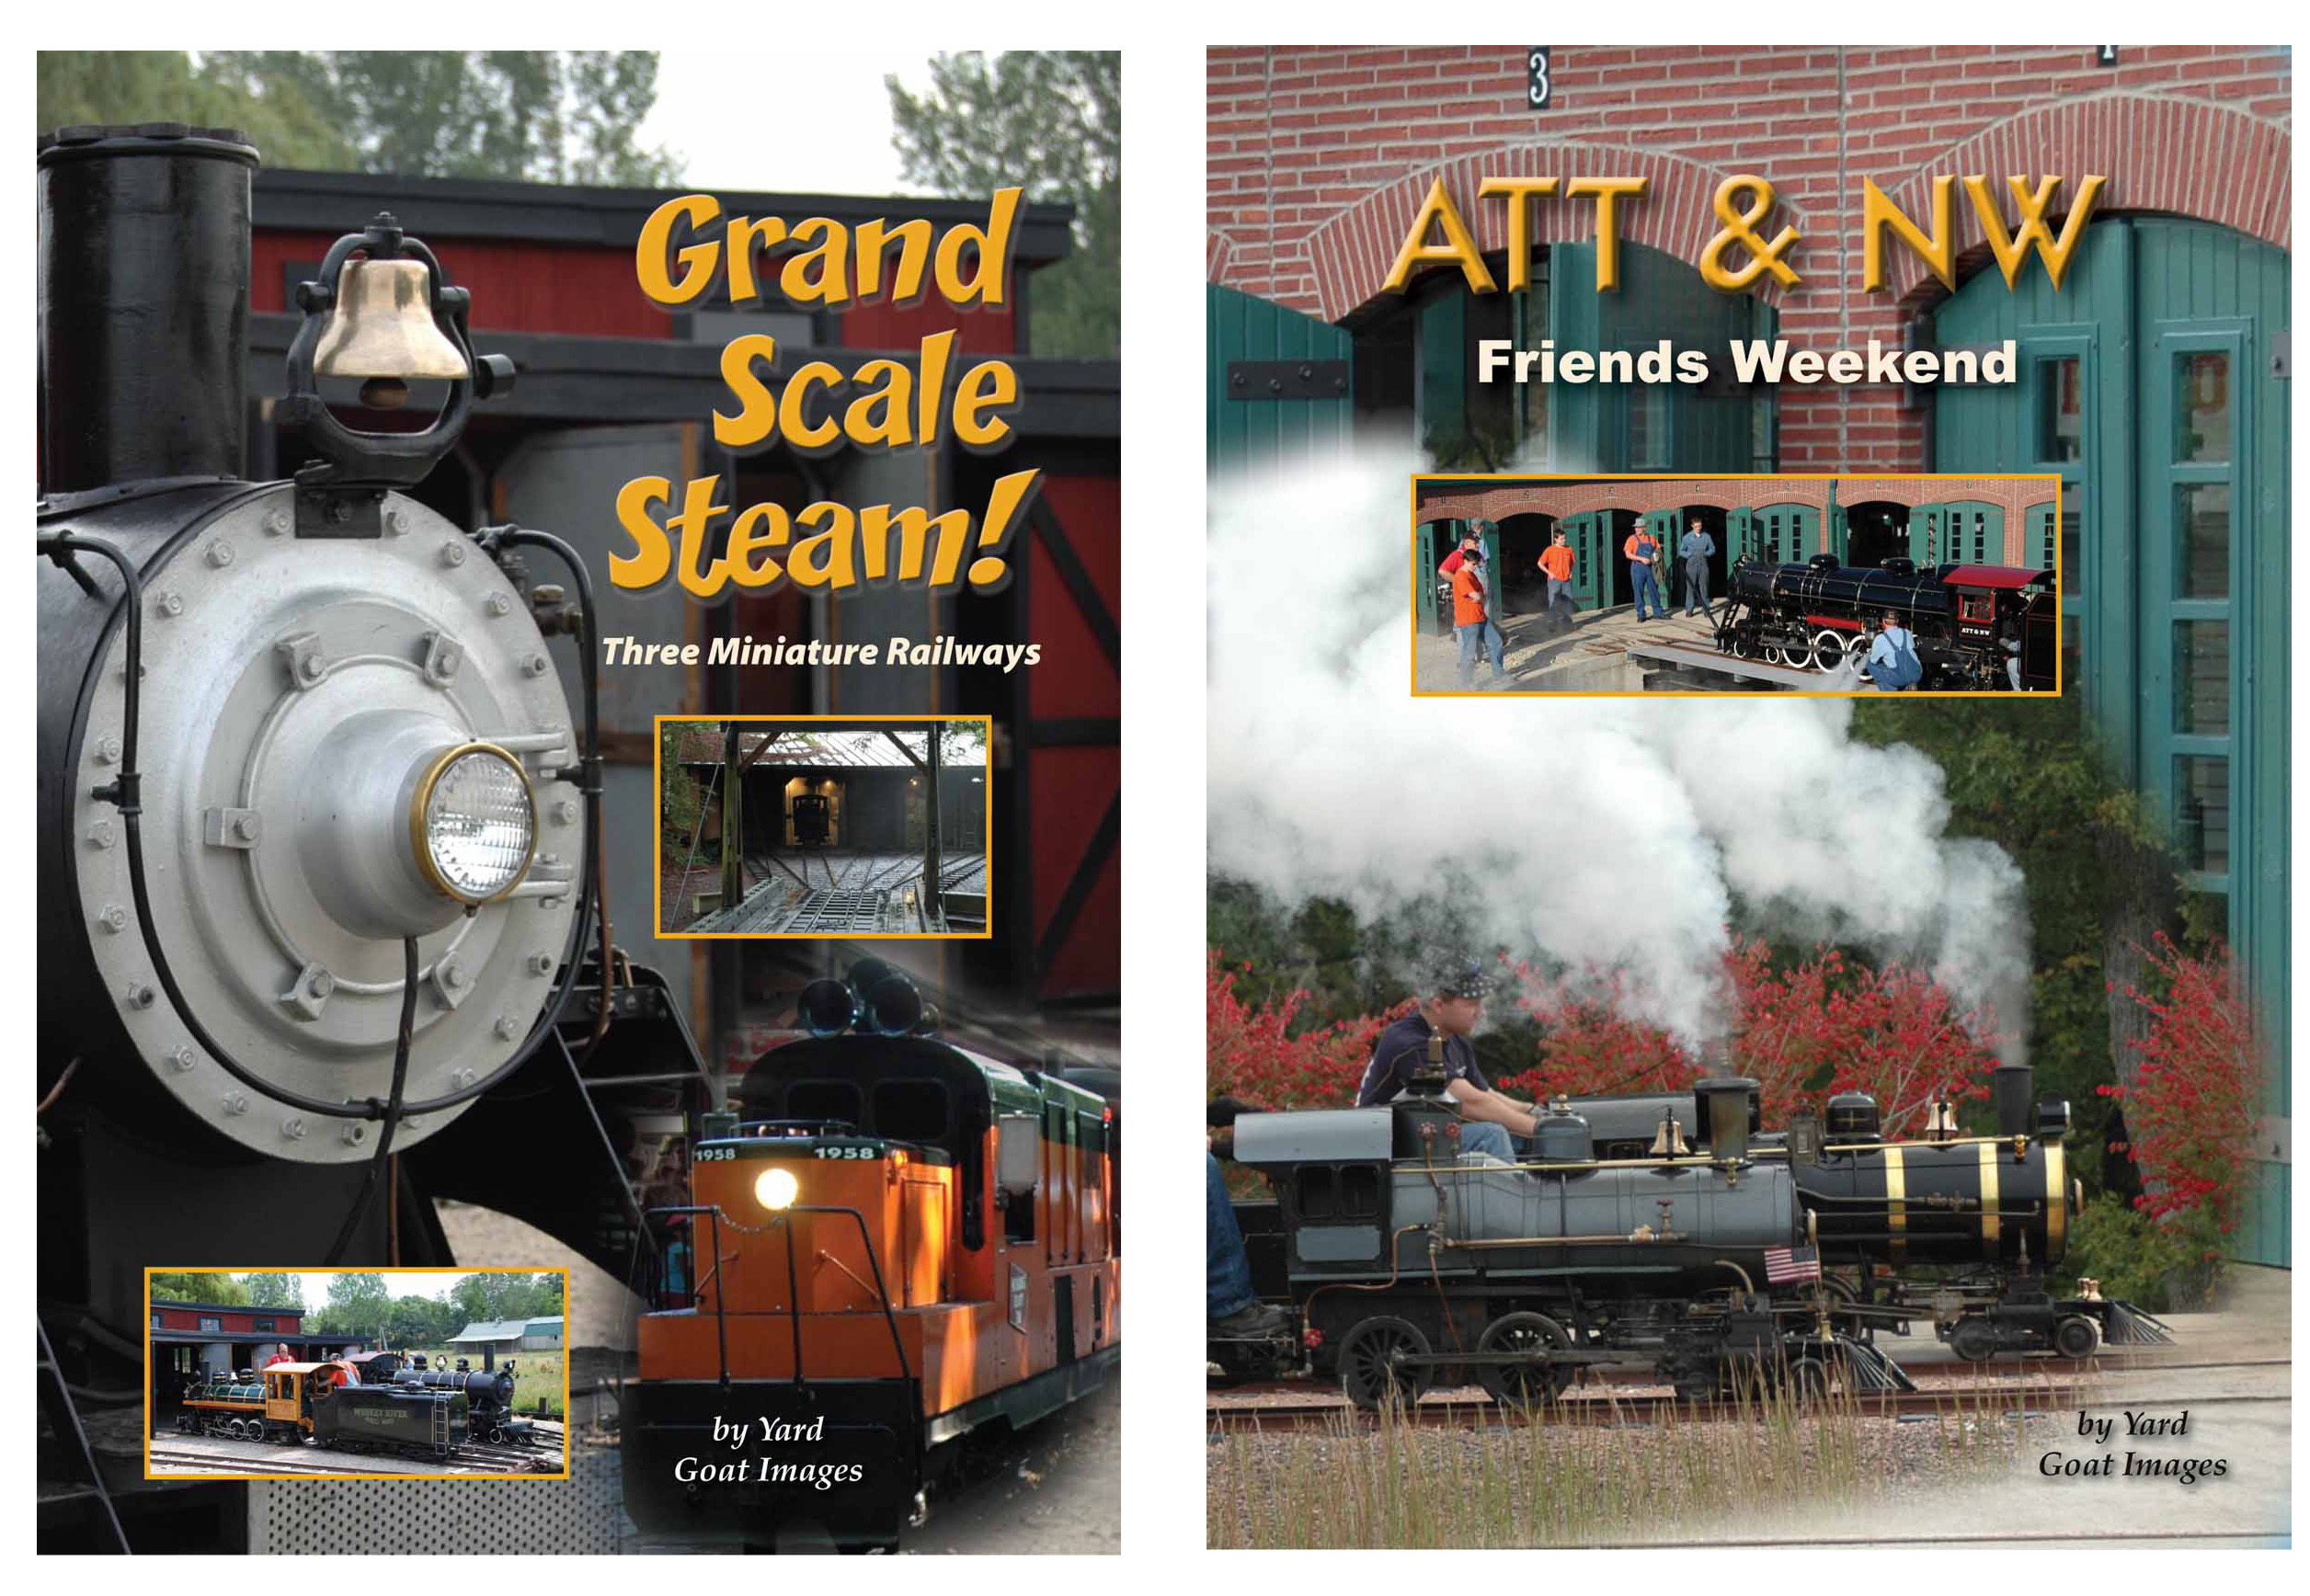 Grand Scale Steam/ATT & NW Friends Weekend Combo 1312